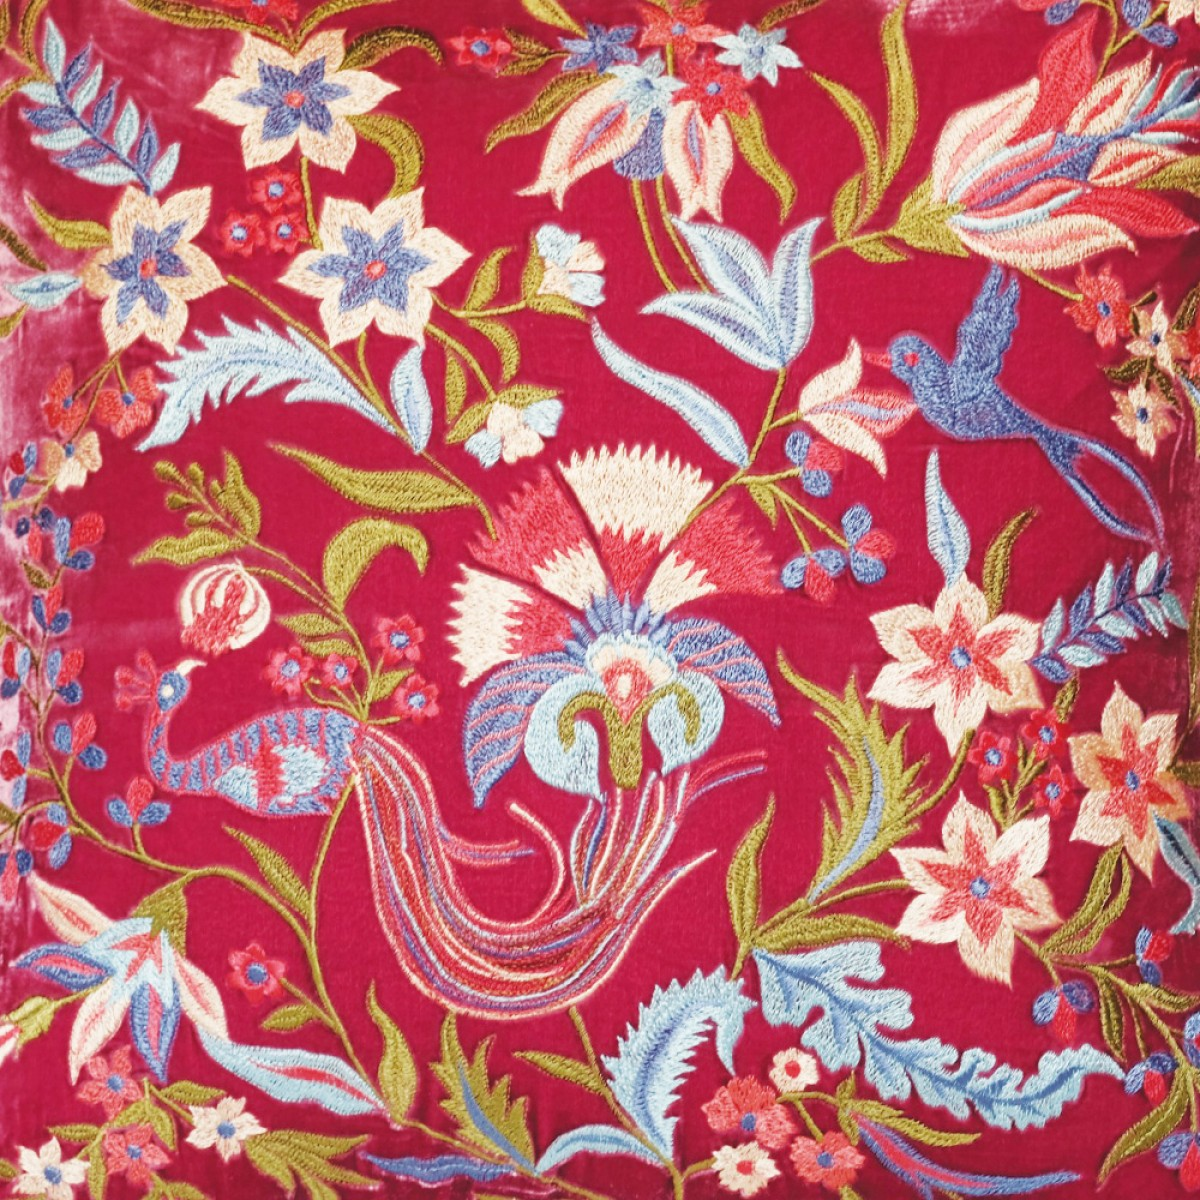 Designer Embroidered Cushion Cover - Maroon